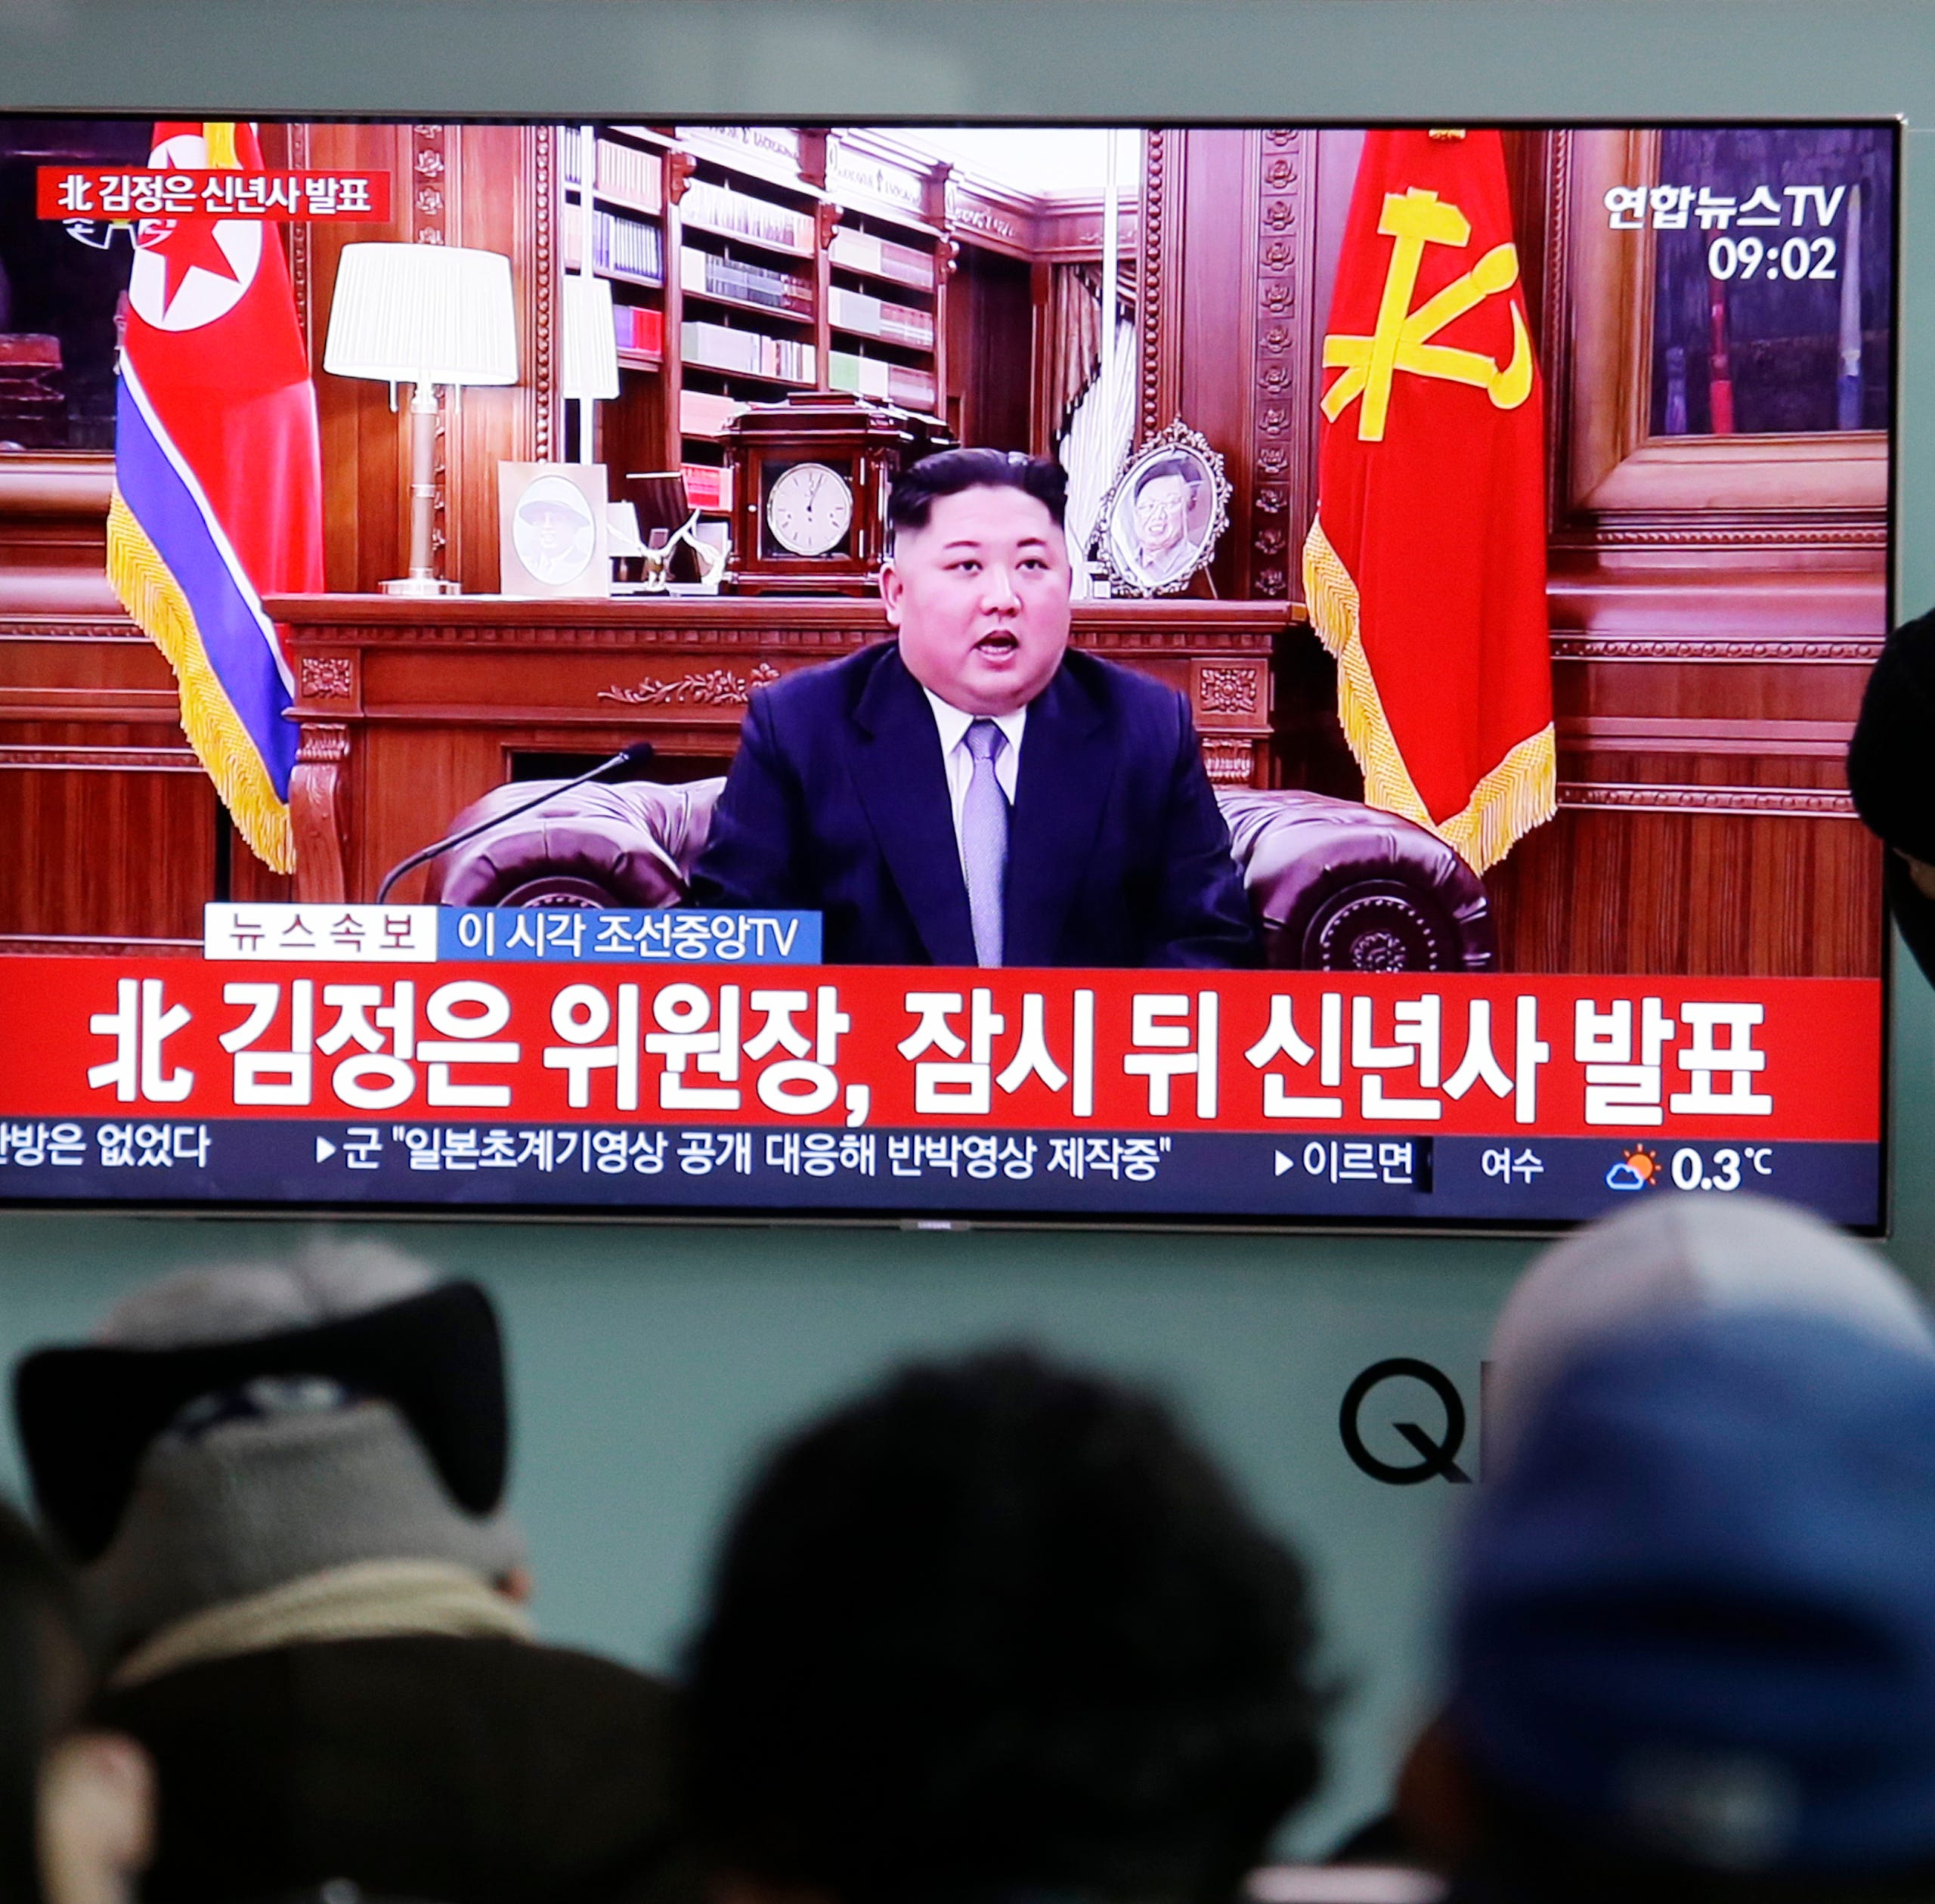 North Korea may be willing to begin denuclearization, and Donald Trump should make a deal.